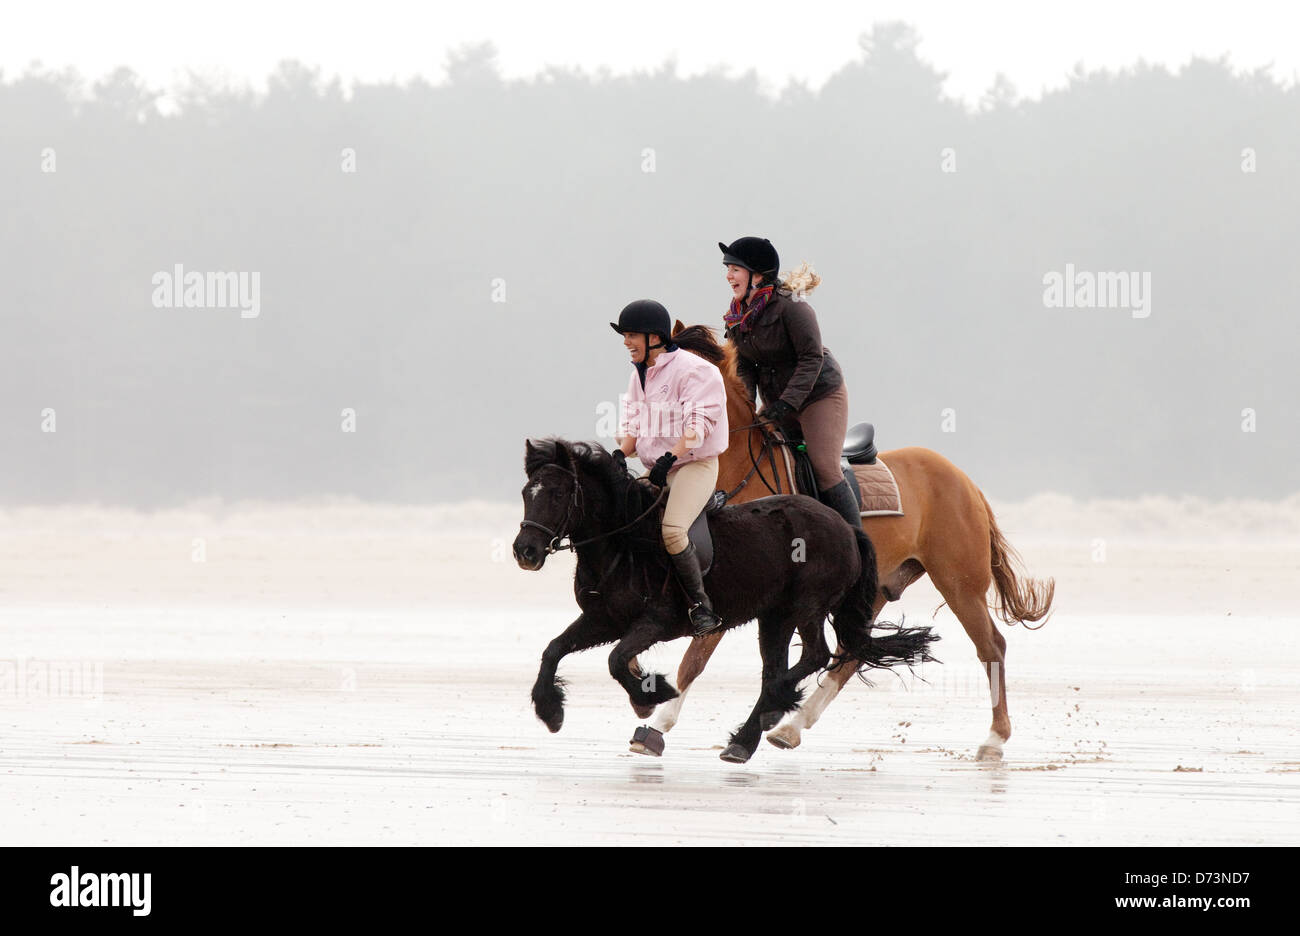 Girls riding two horses galloping on the beach, Holkham Beach, north Norfolk coast UK - Stock Image